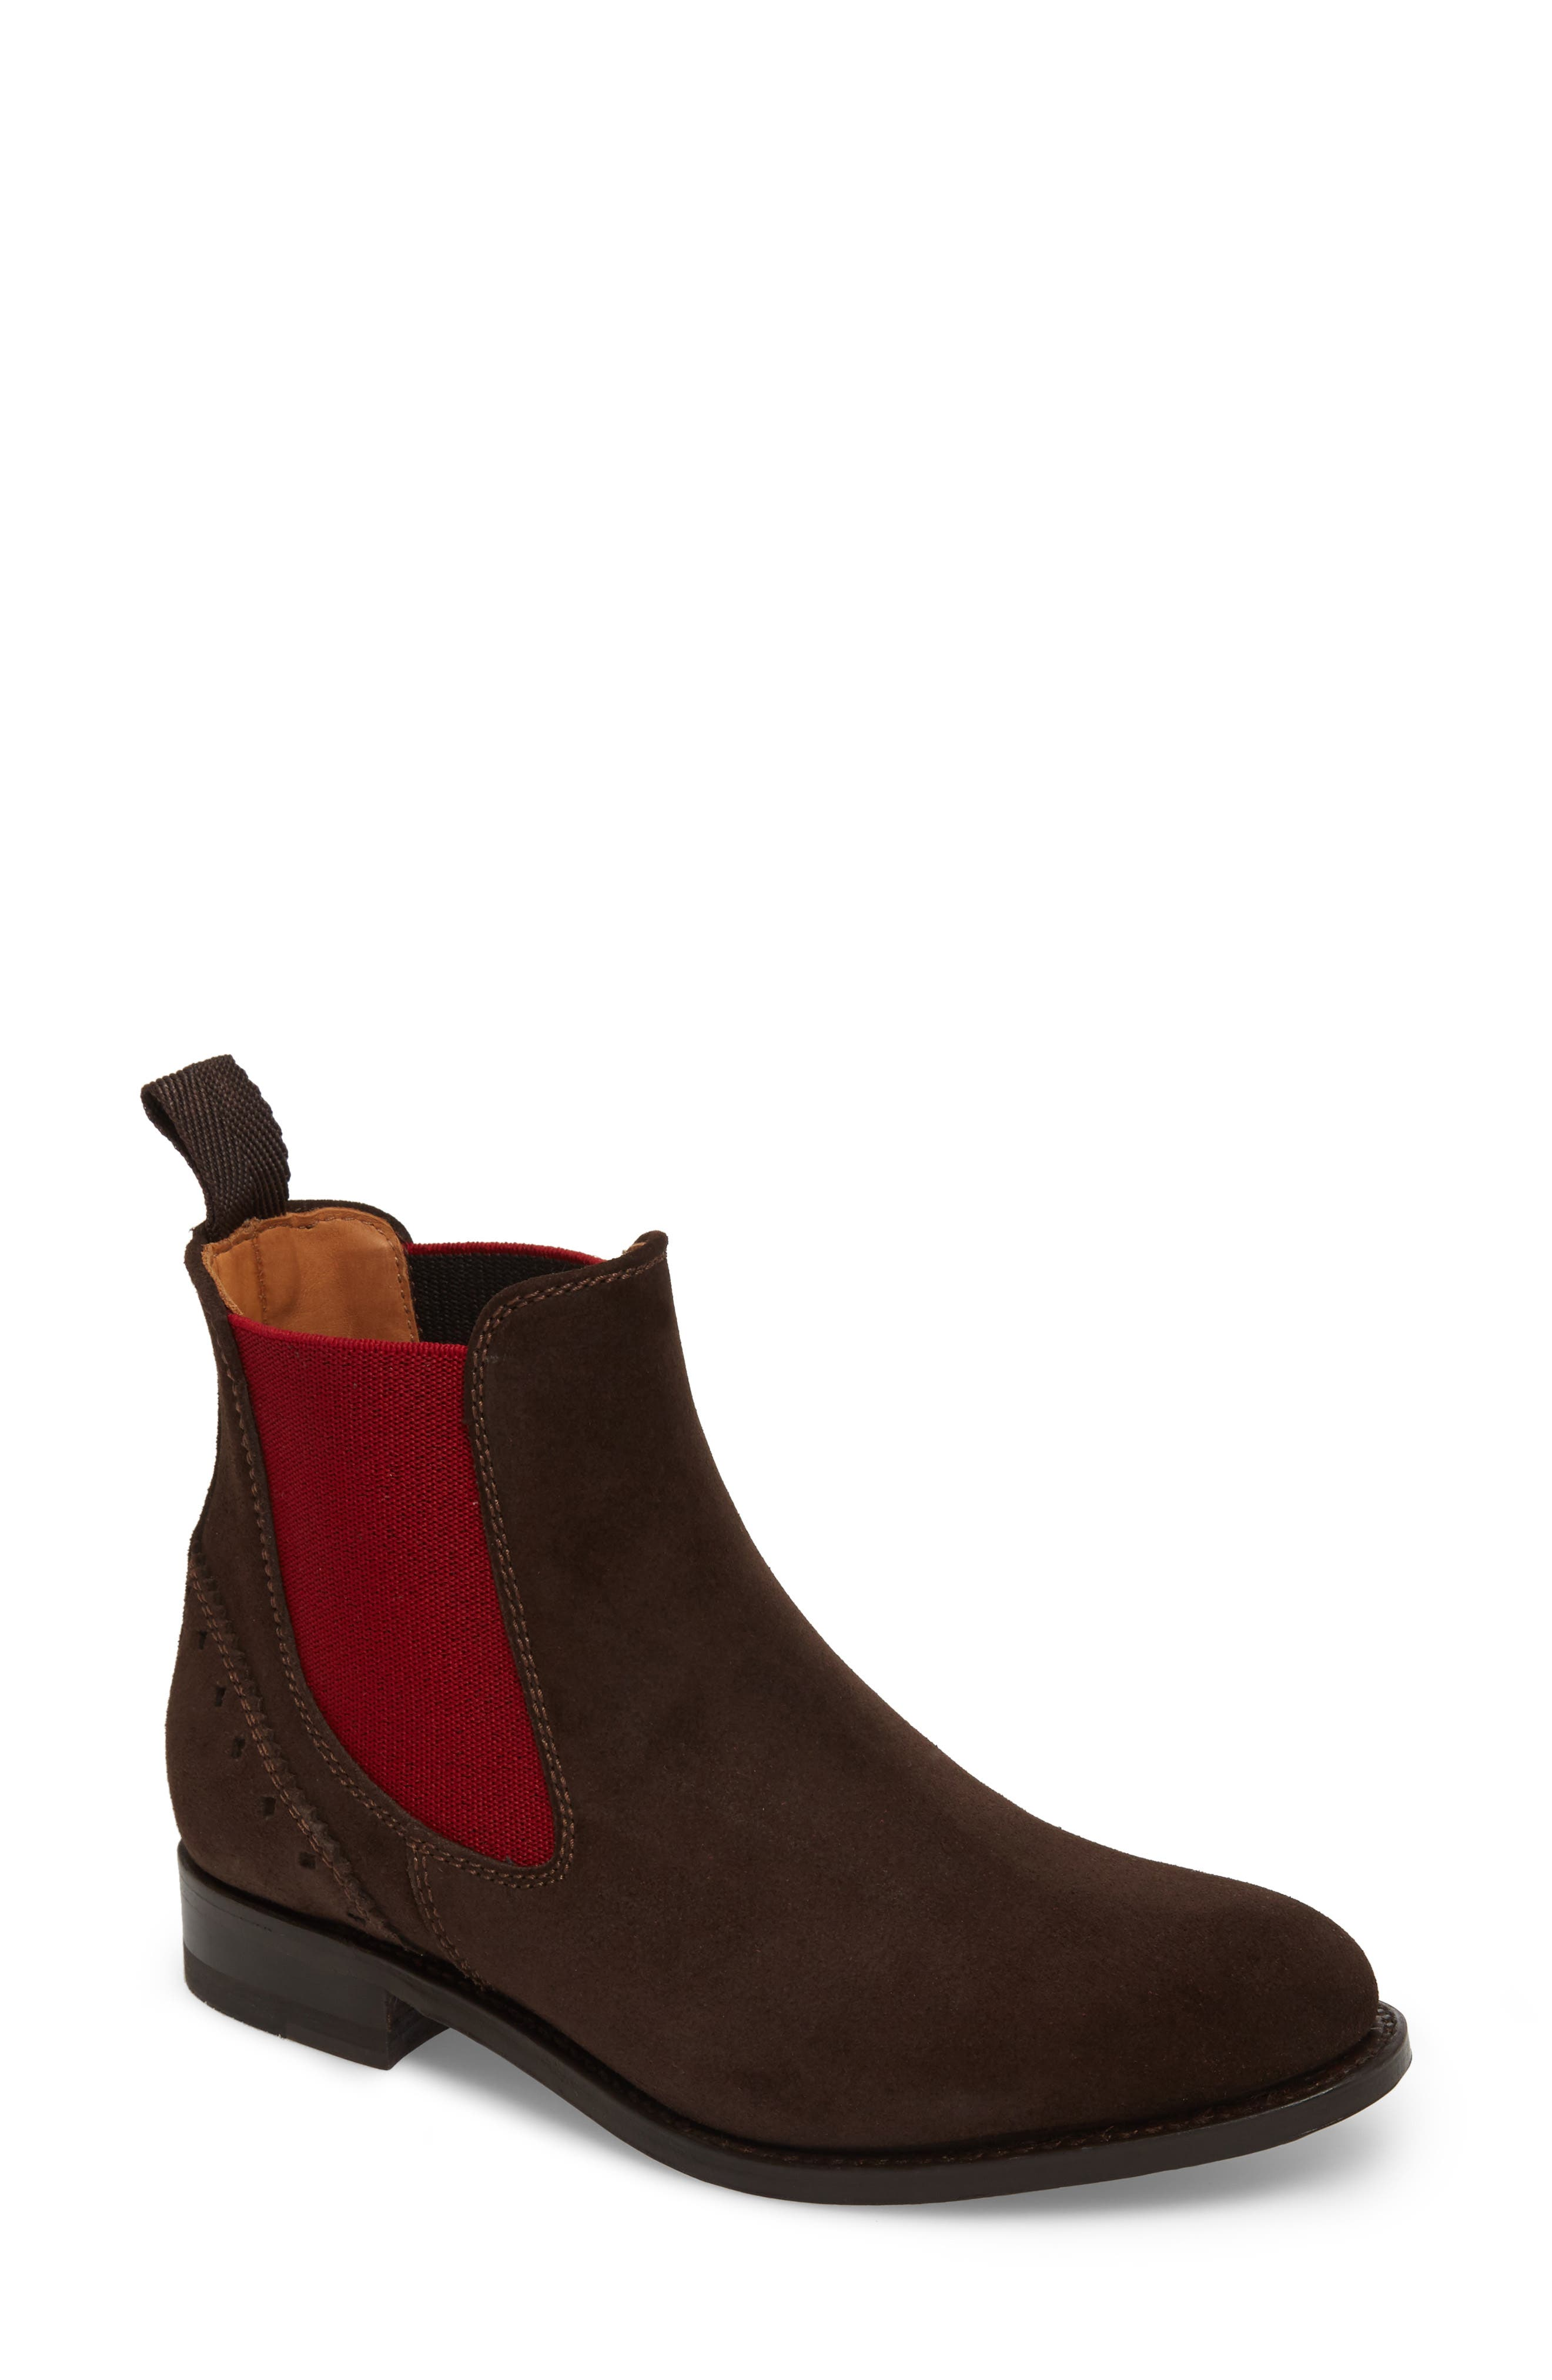 Benissa Lux Chelsea Boot,                         Main,                         color, Brown Suede